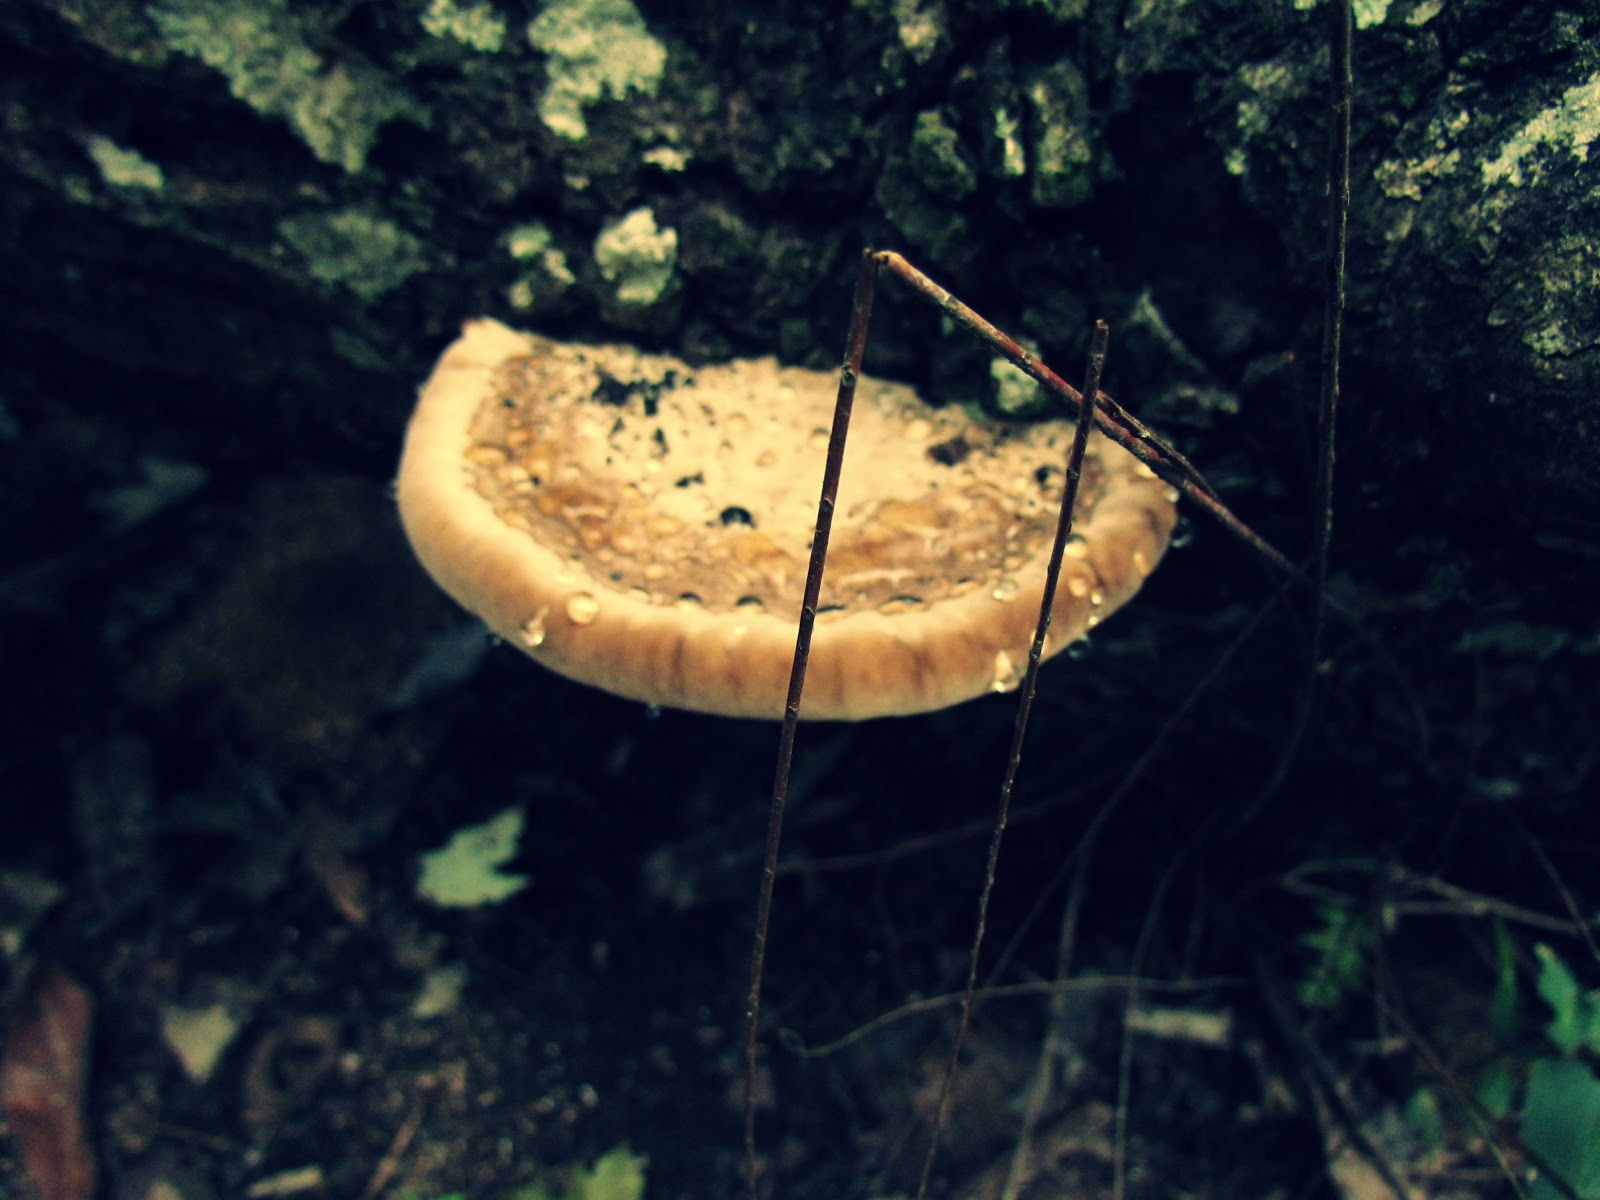 Mushroom Growing on Dark Tree Log in Wet Forest in the Autumn Months